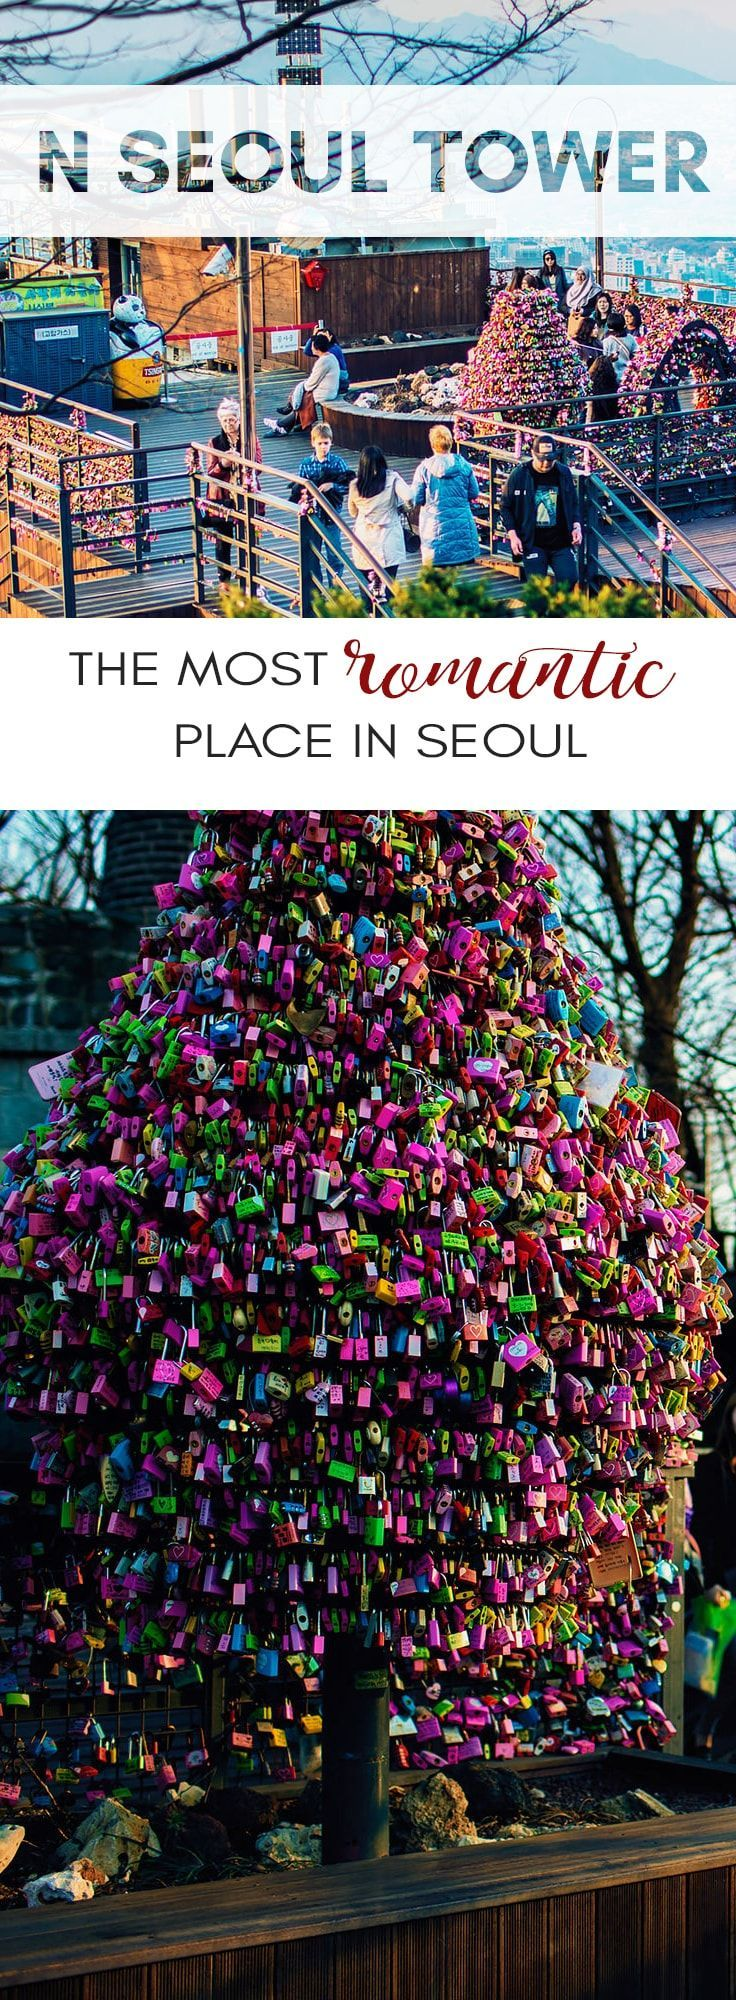 Namsan Seoul Tower or N Seoul Tower is the perfect date itinerary for a romantic date in Seoul South Korea. A Seoul Travel Guide to the love locks and alive museum at Seoul tower.